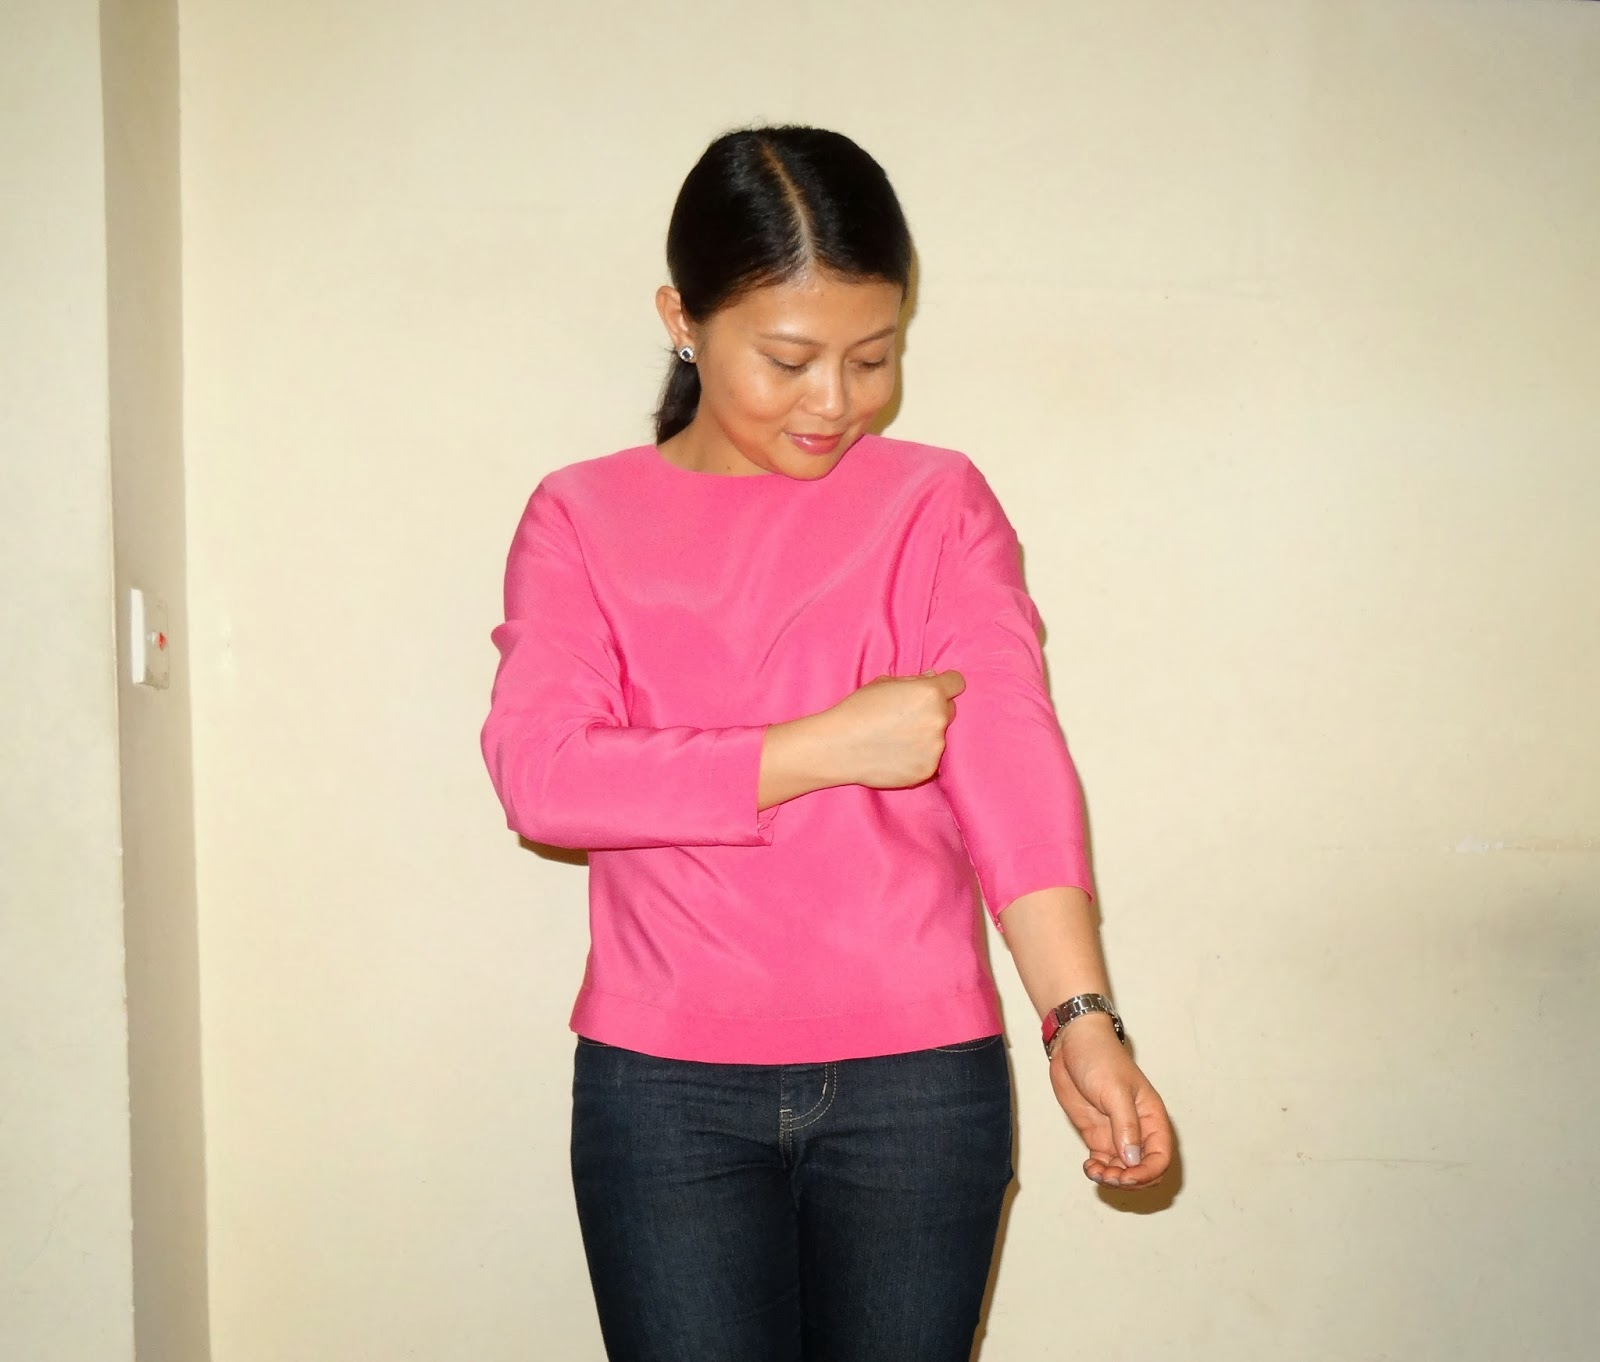 http://velvetribbonsew.blogspot.com/2014/02/finished-february-garment-pink-blouse.html